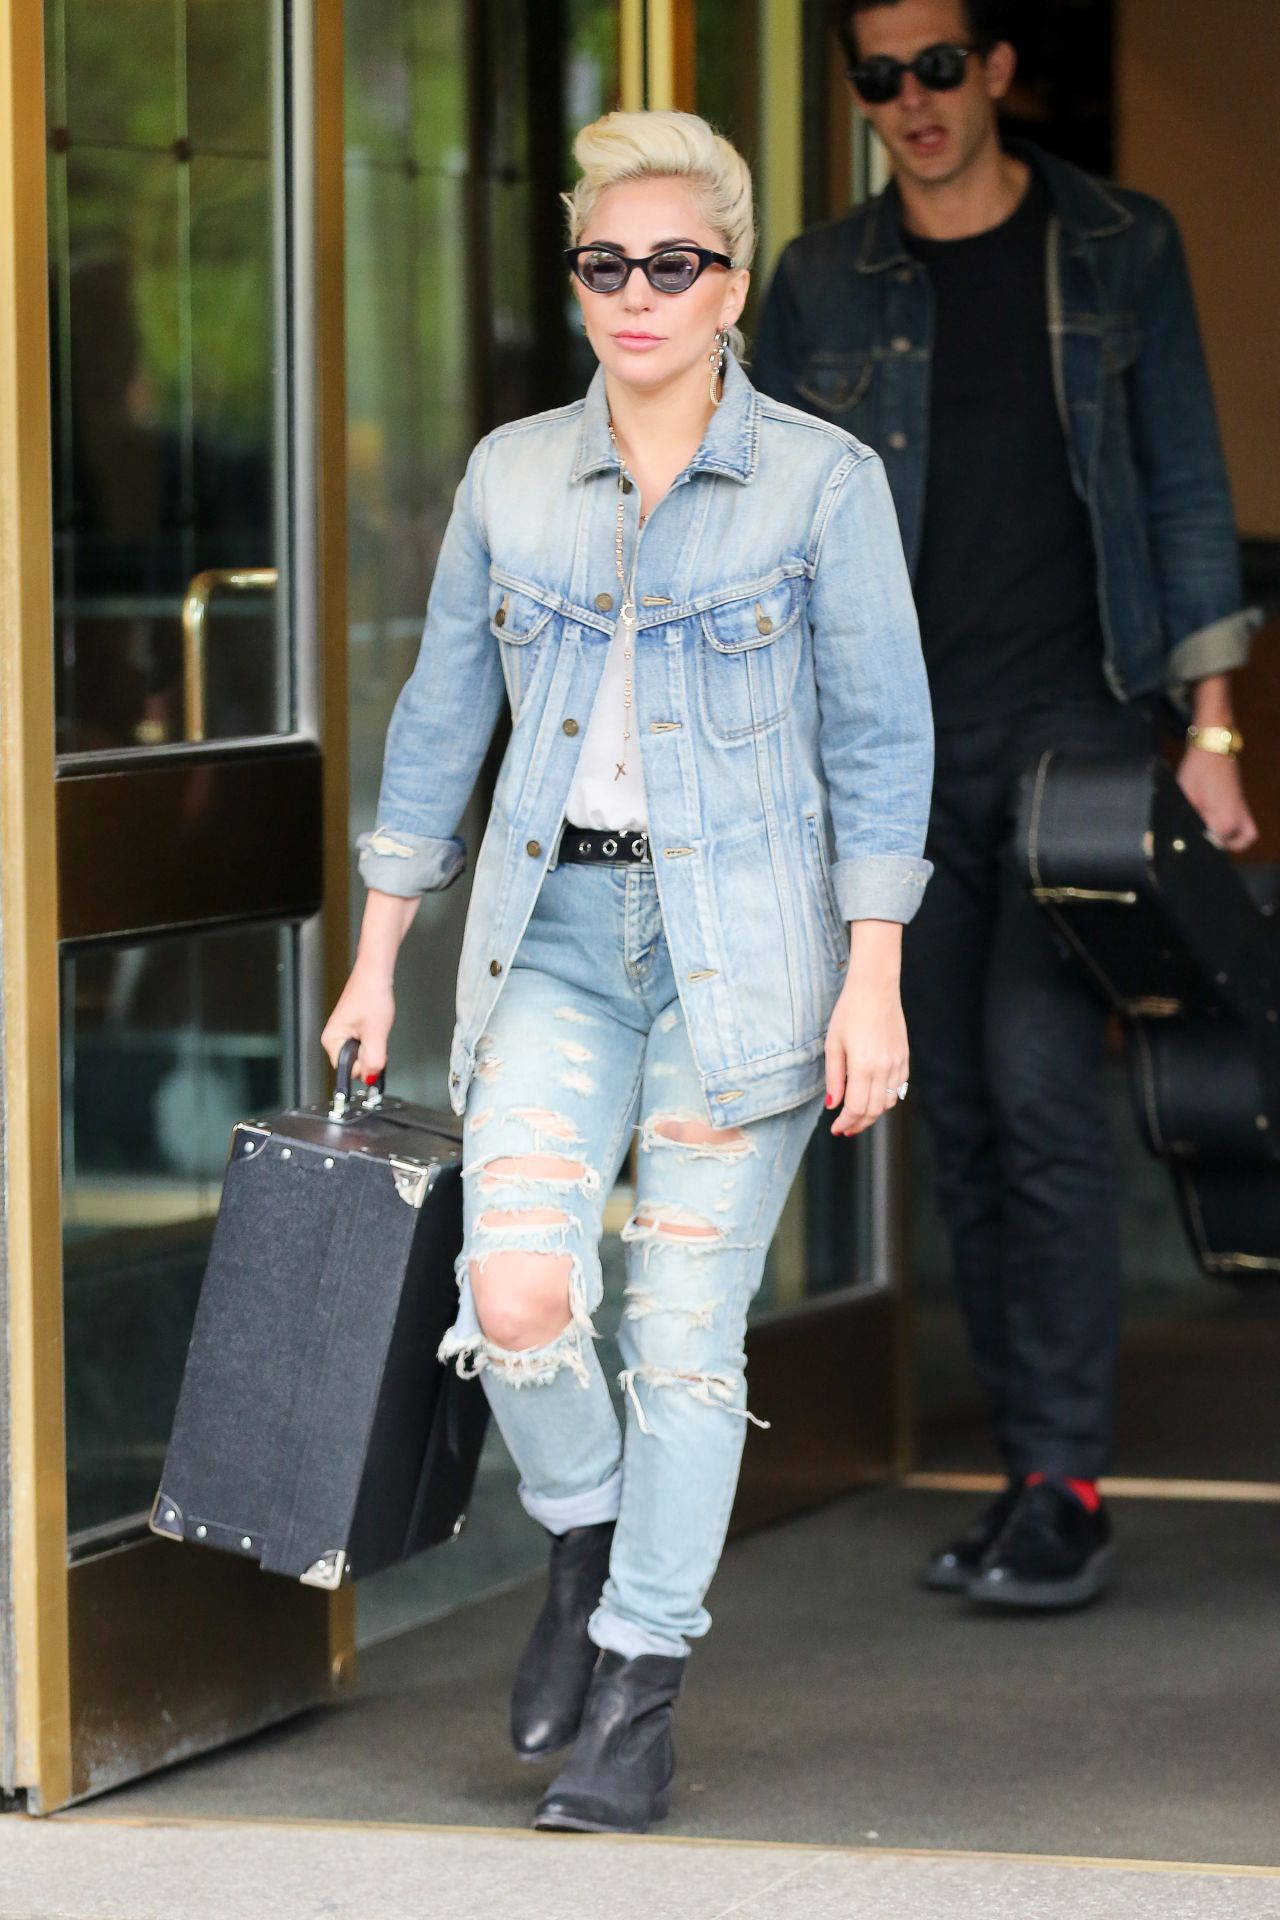 Lady Gaga In Jeans Leaving Her Apartment Building New York City 5 3 2017